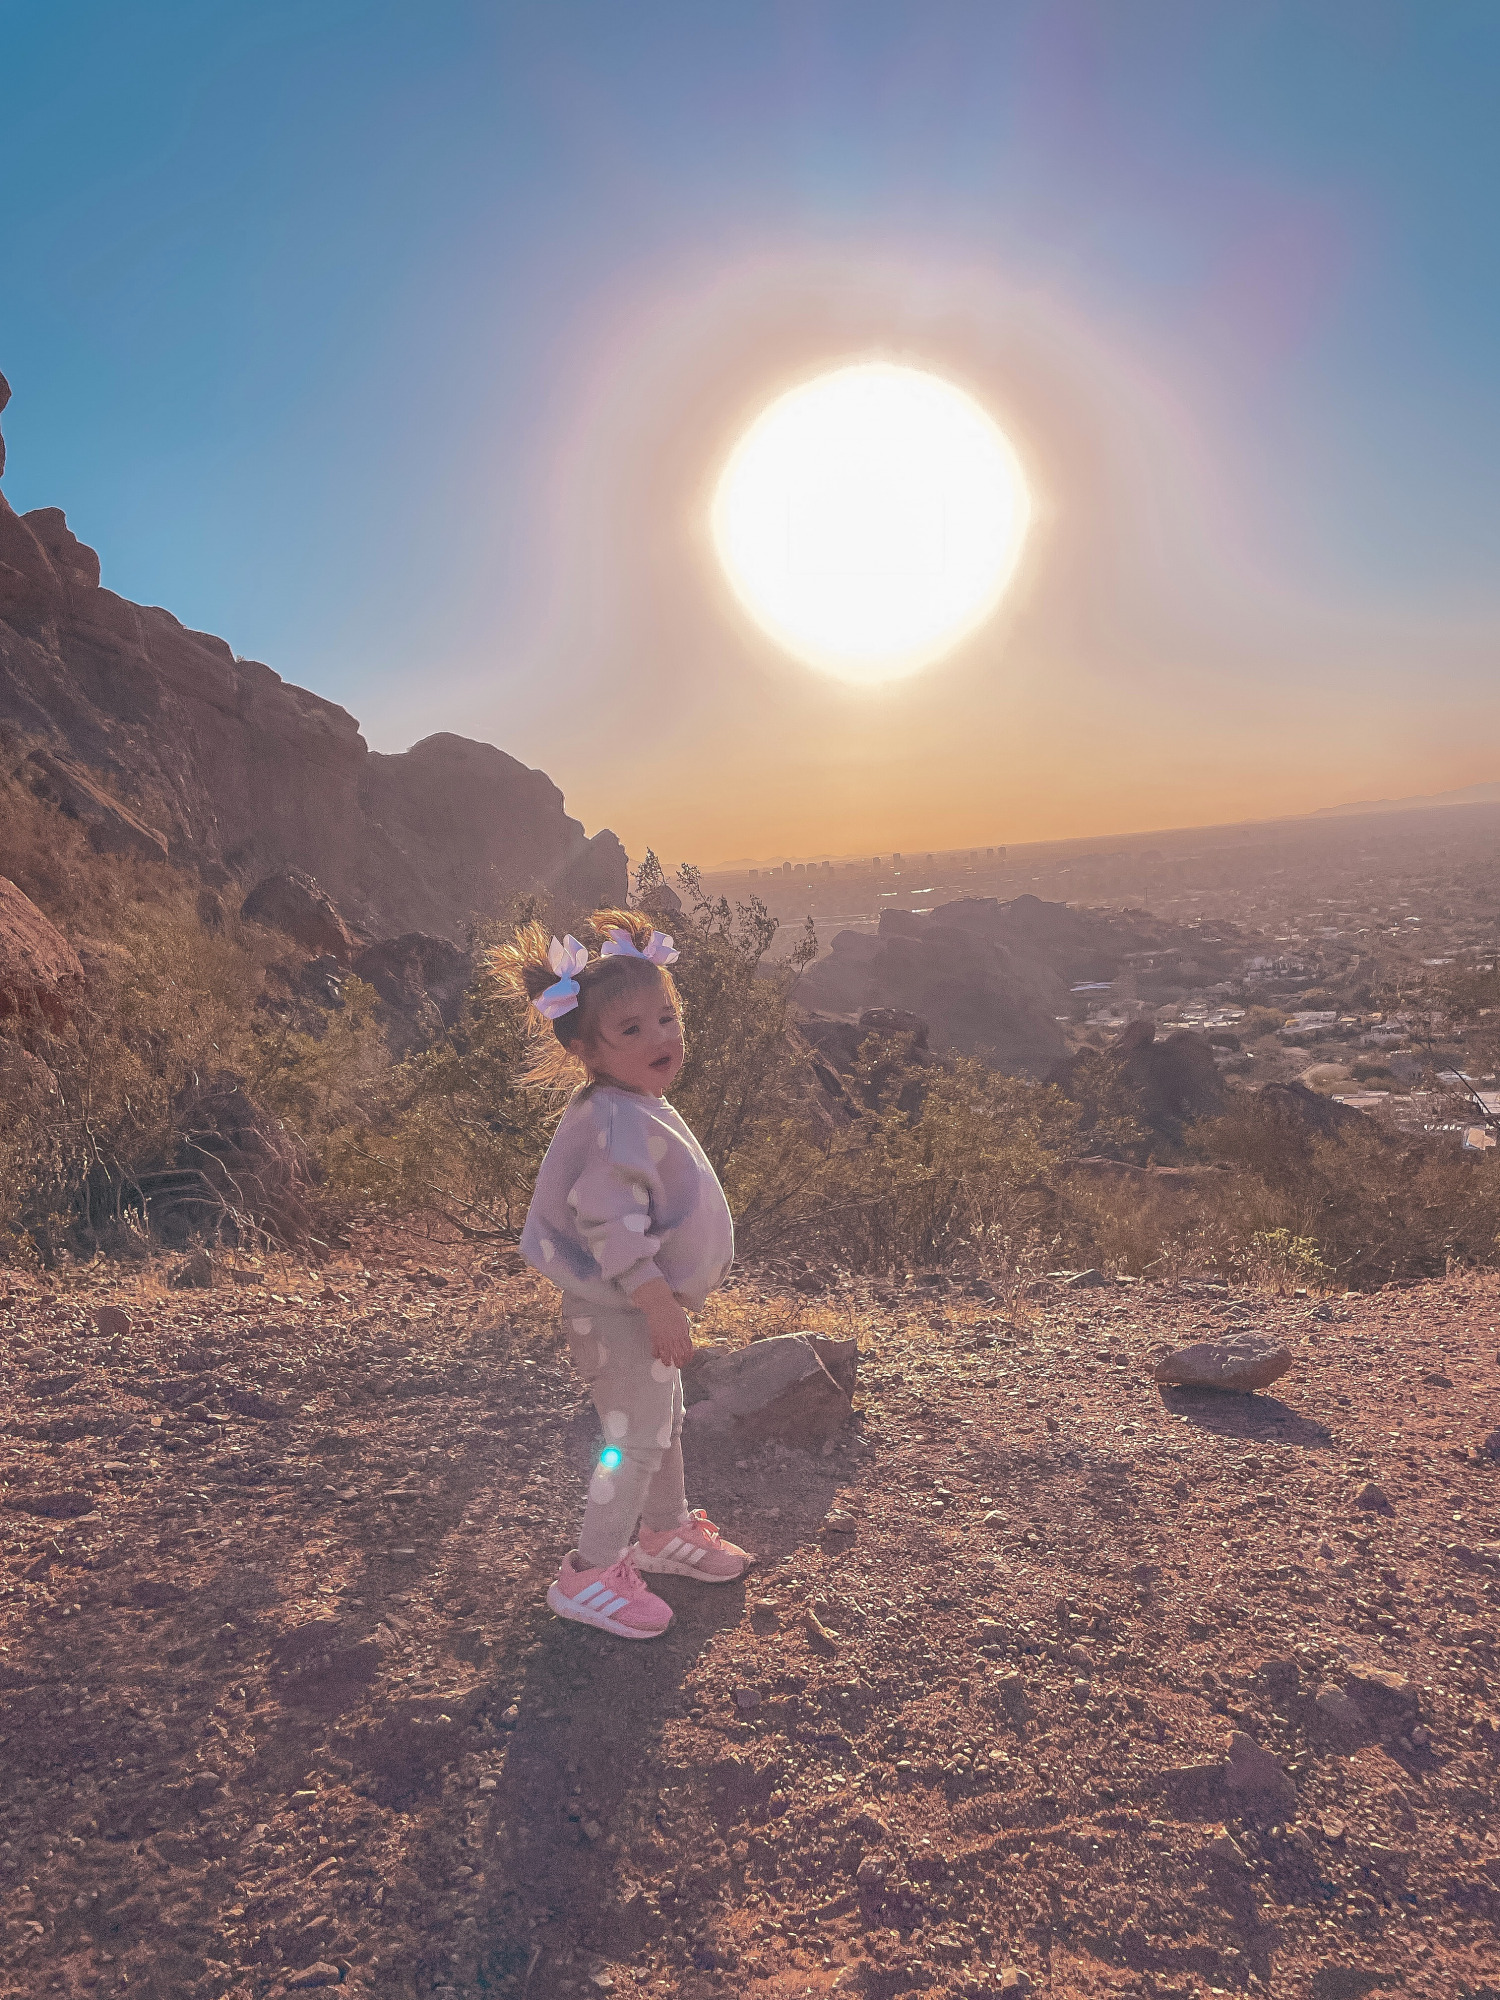 Hiking Outfits by popular US fashion blog, The Sweetest Thing: image of a little girl standing outside and wearing a grey and white polka dot lounge set, sneakers, and matching white hair bows.